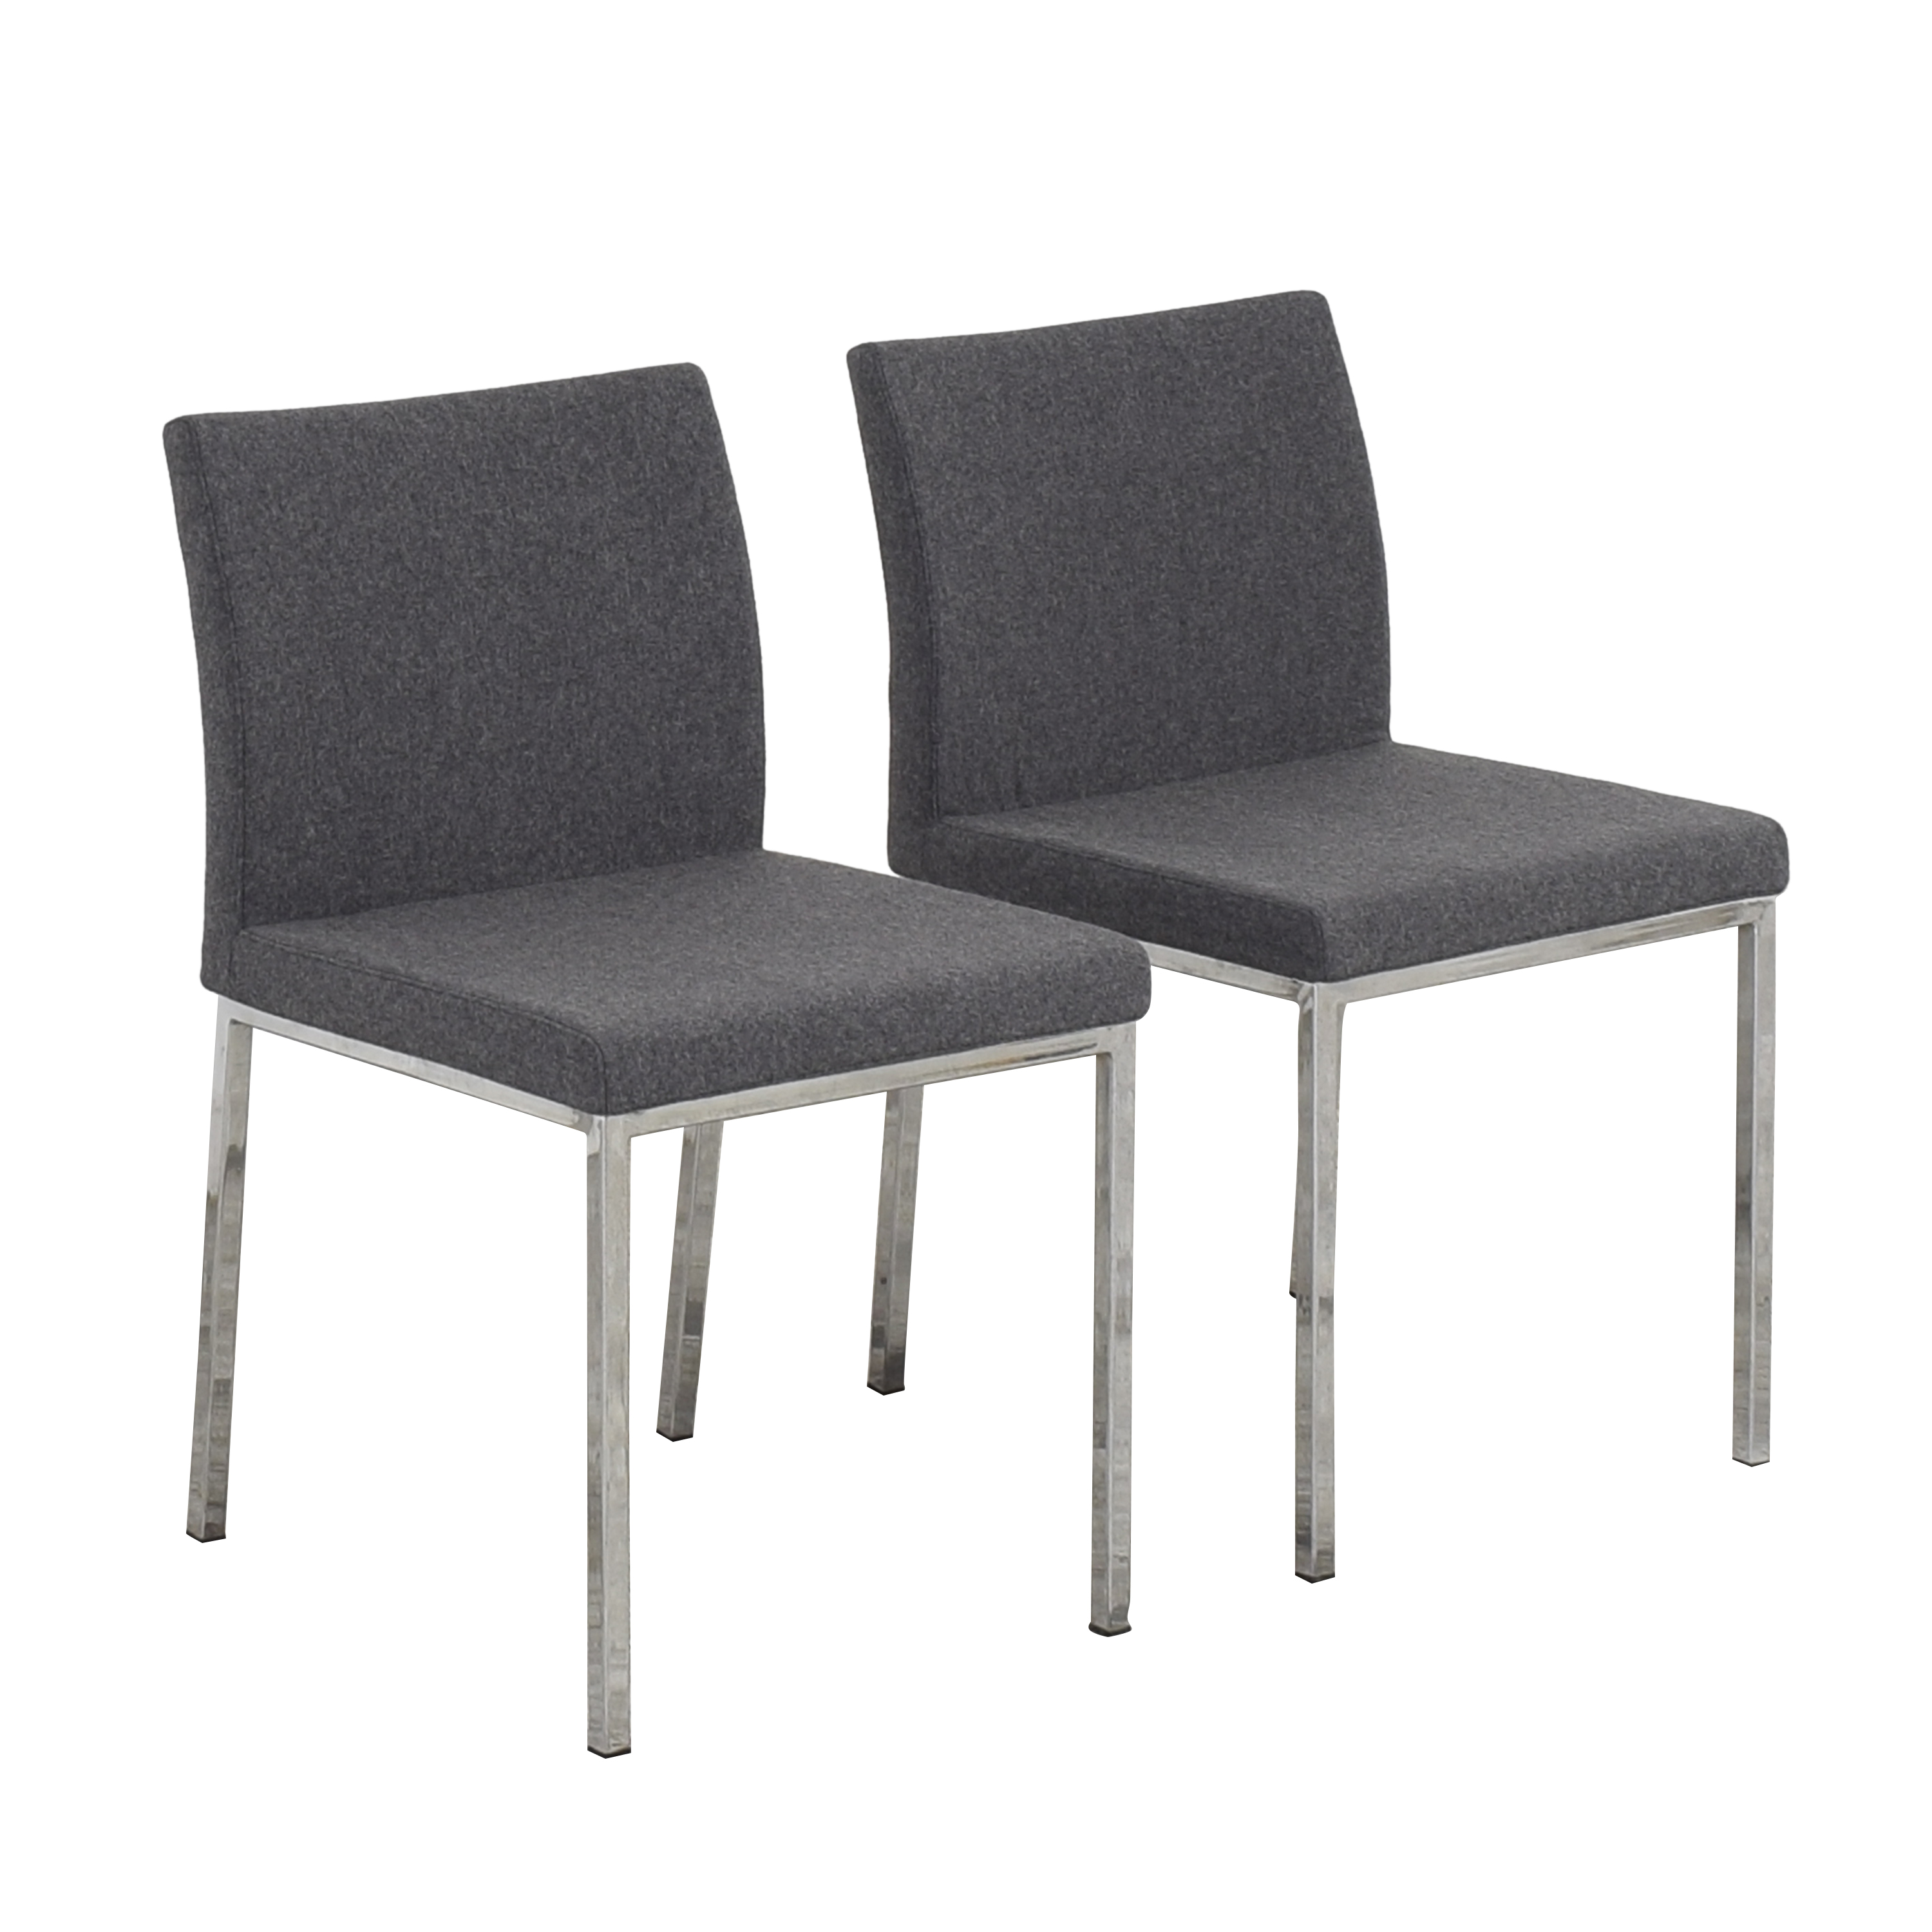 buy Crate & Barrel Upholstered Dining Chairs Crate & Barrel Dining Chairs